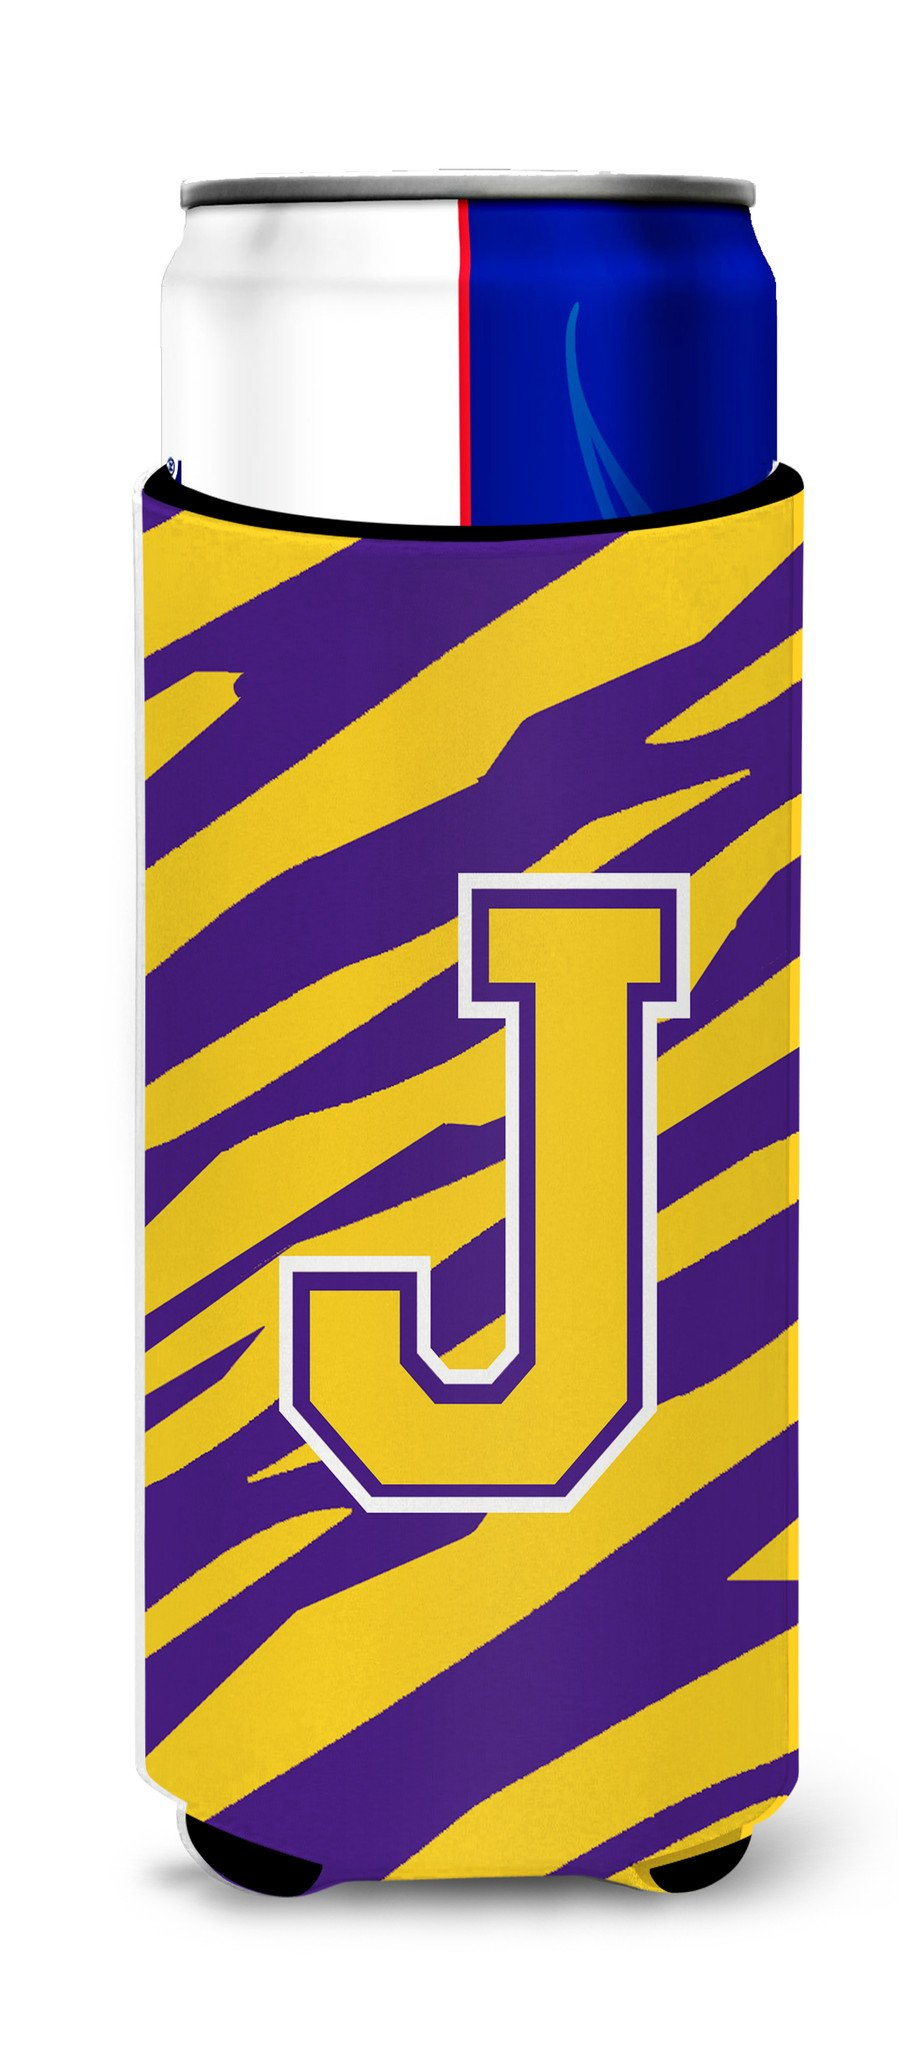 Monogram - Tiger Stripe - Purple Gold  Letter J Ultra Beverage Insulators for slim cans CJ1022-JMUK by Caroline's Treasures